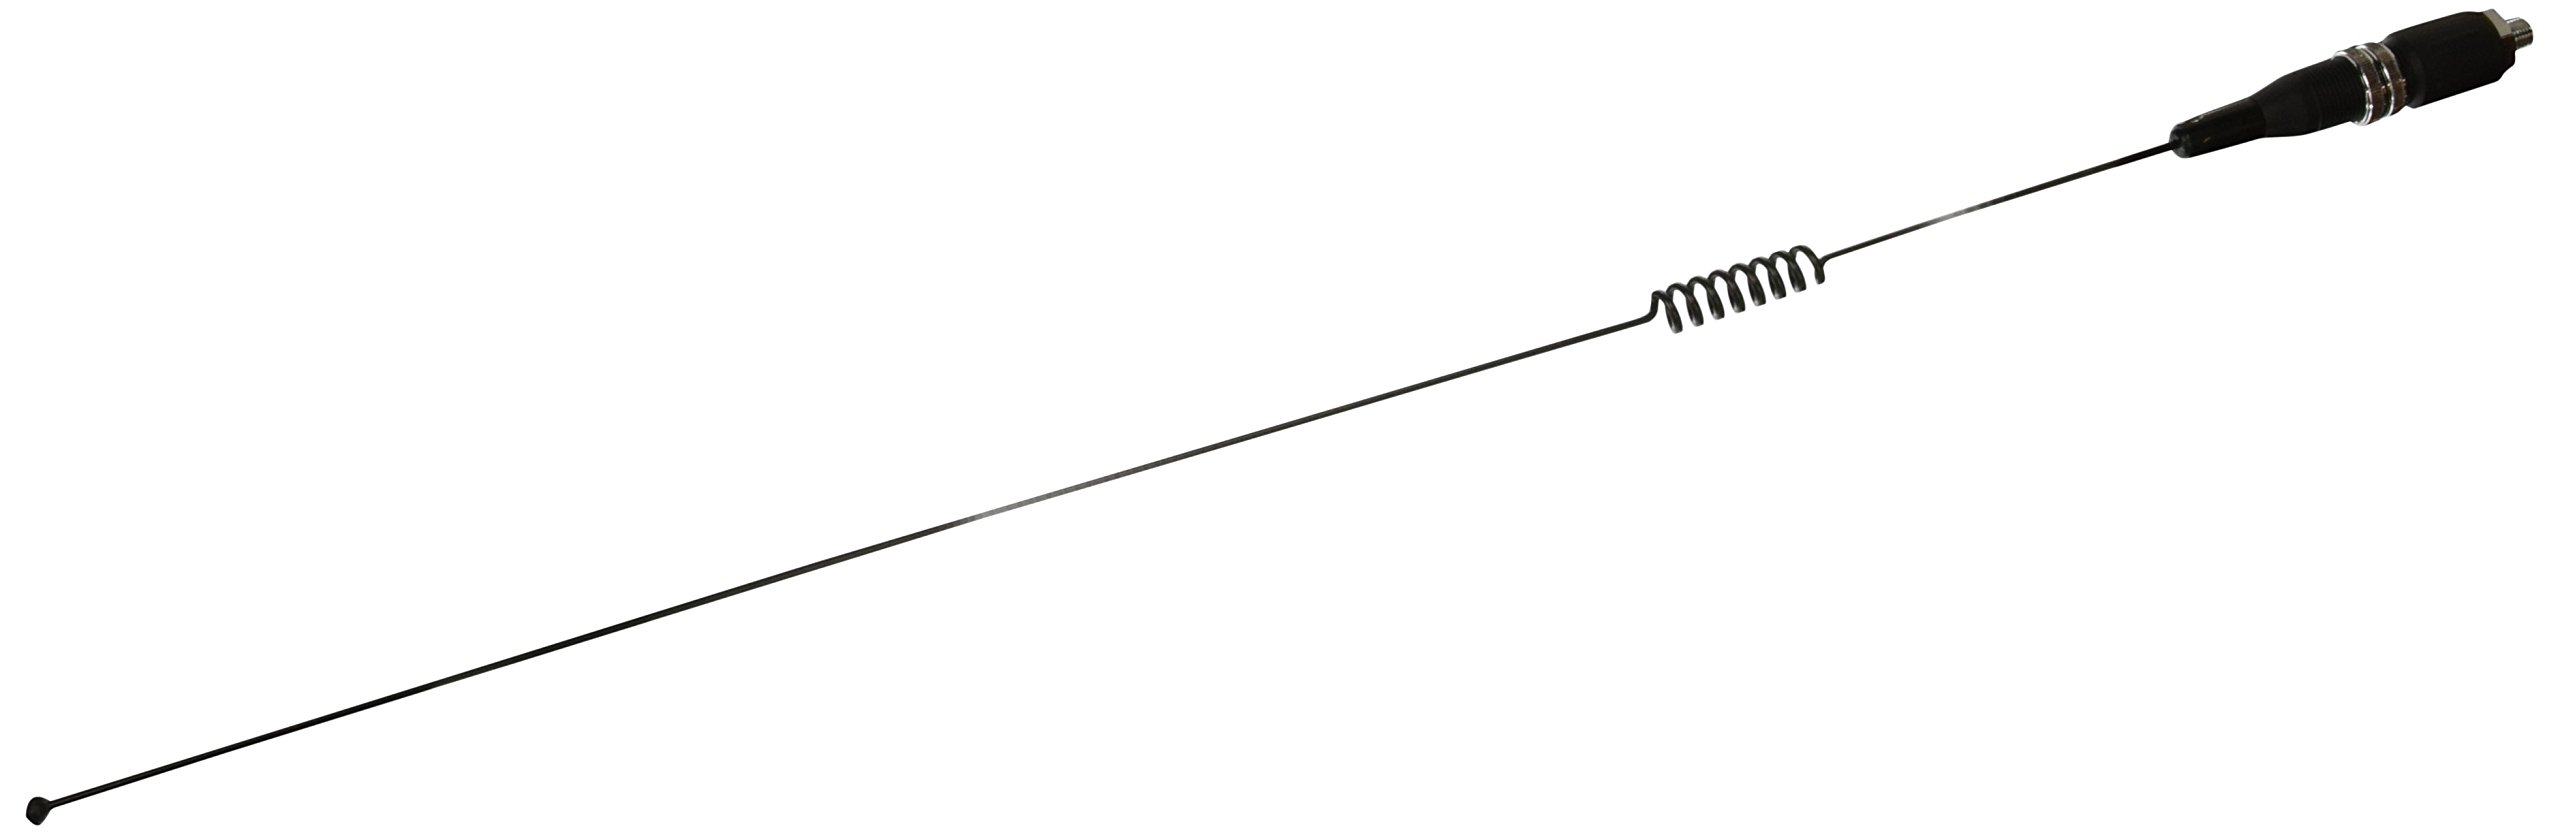 RoadPro RP-550 36'' Ring Tunable CB Antenna